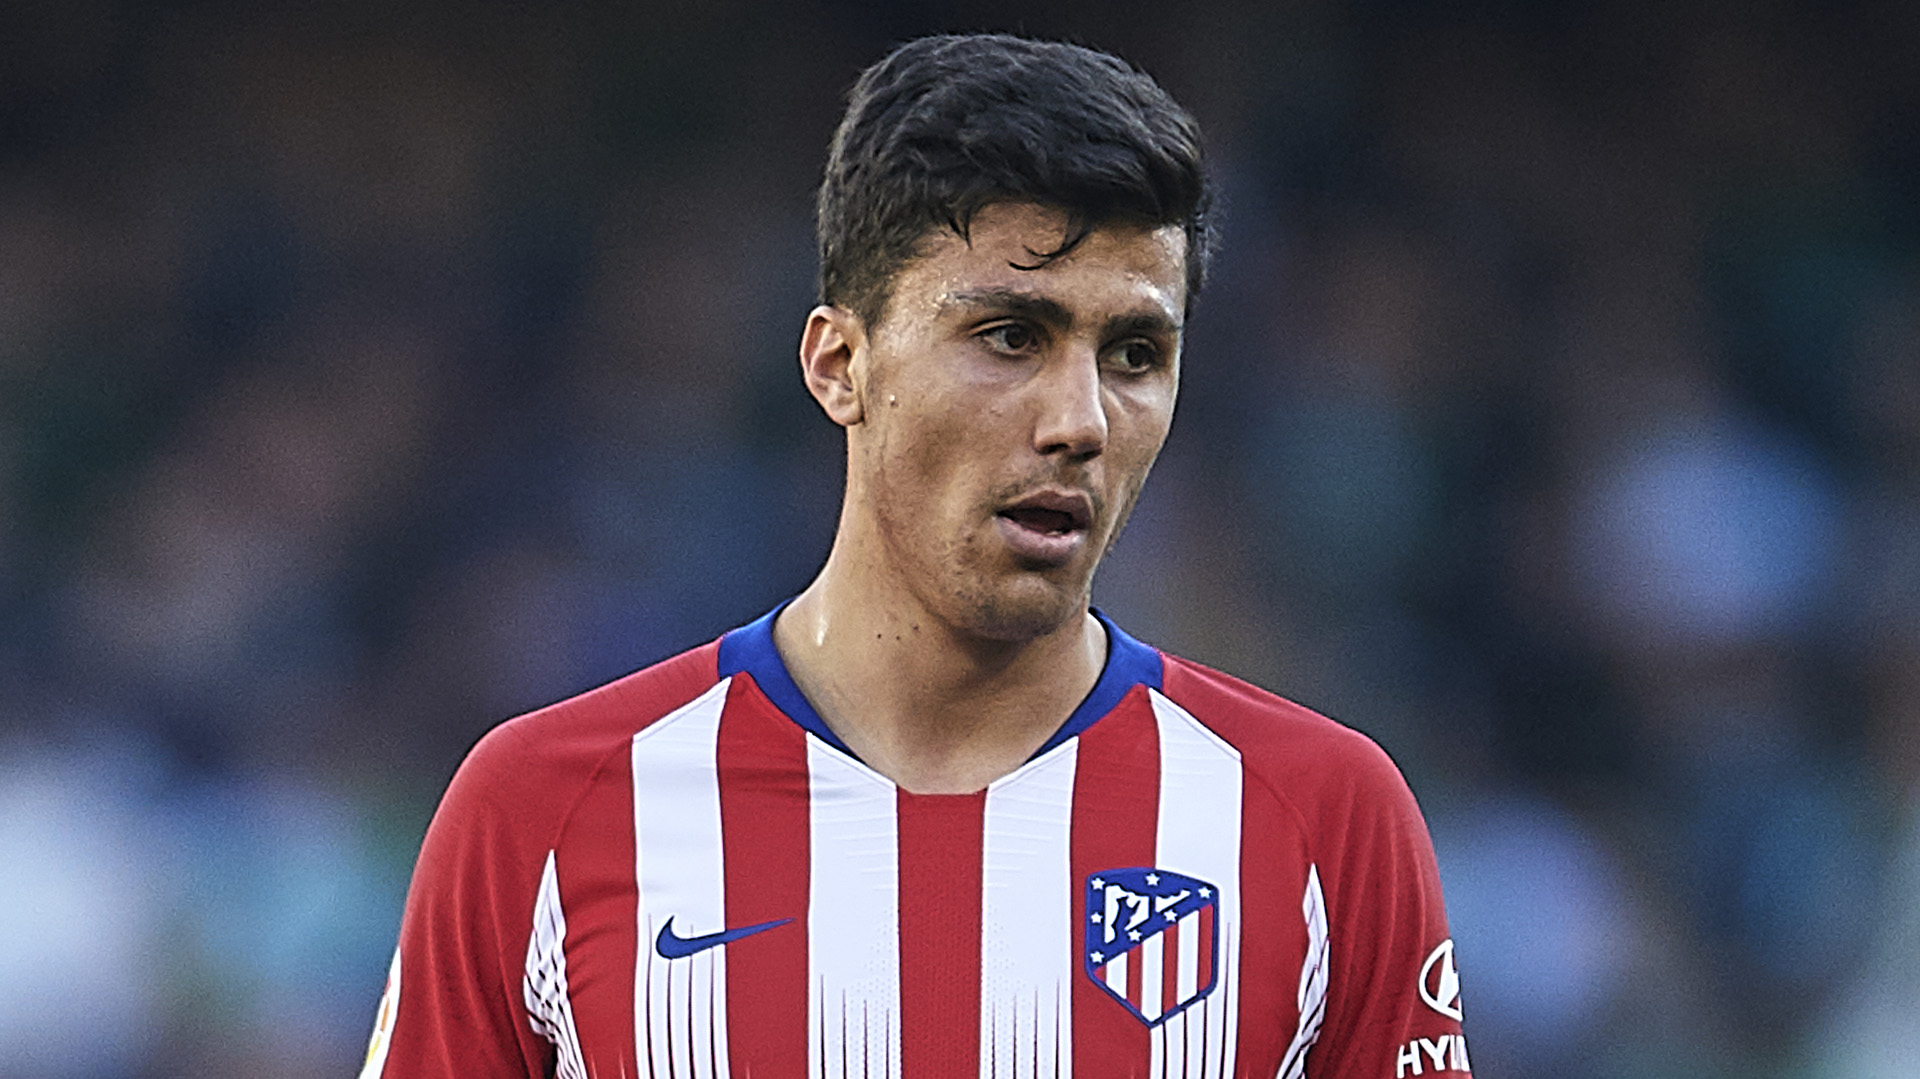 Man City set to sign €70m Rodri from Atletico